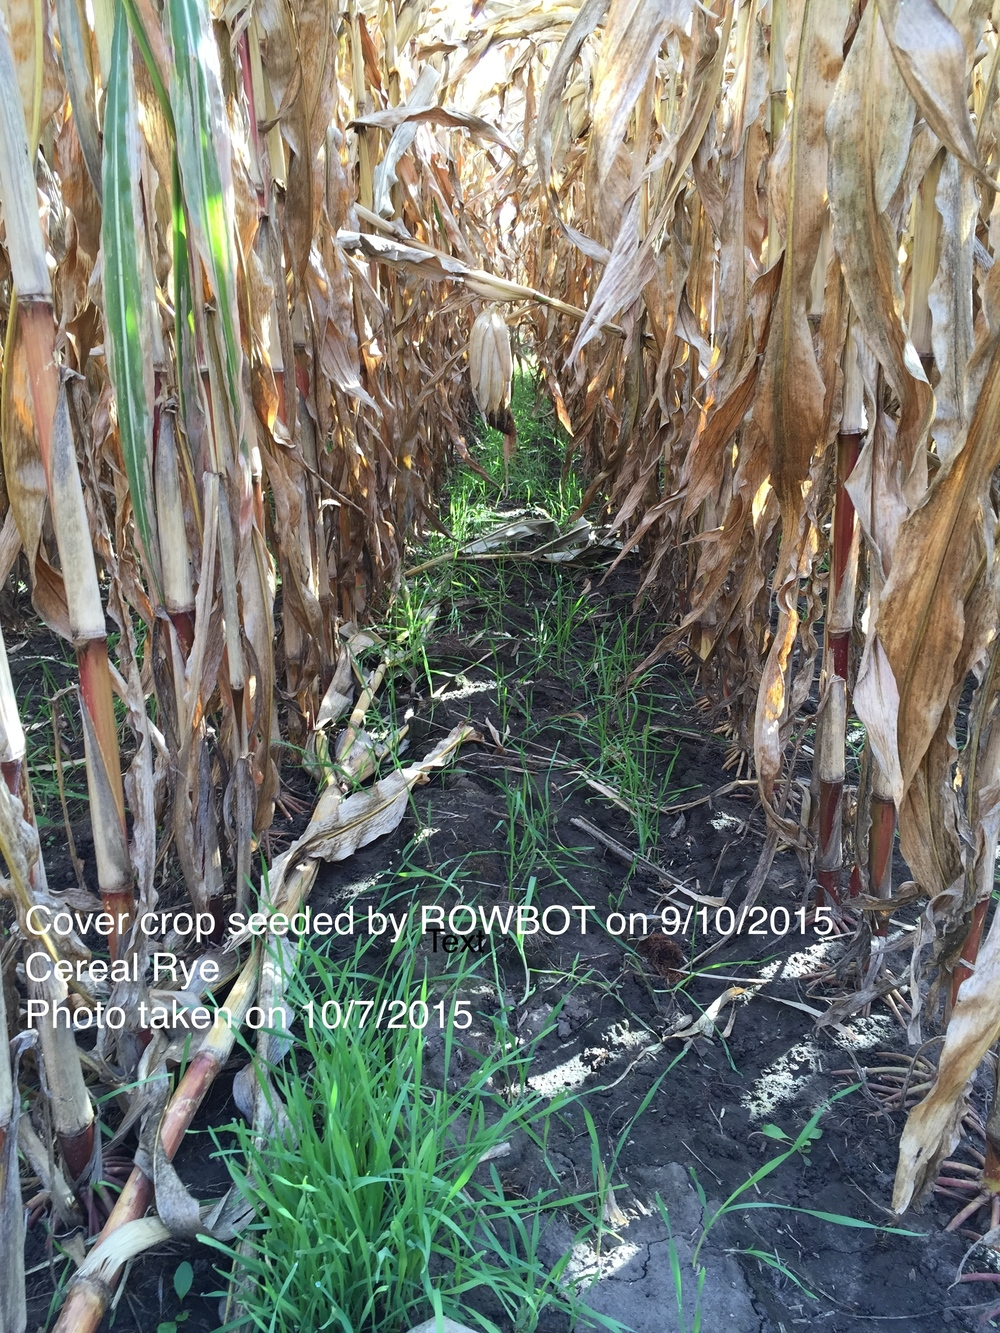 ROWBOT_rye_10sep15planted_raw.jpg